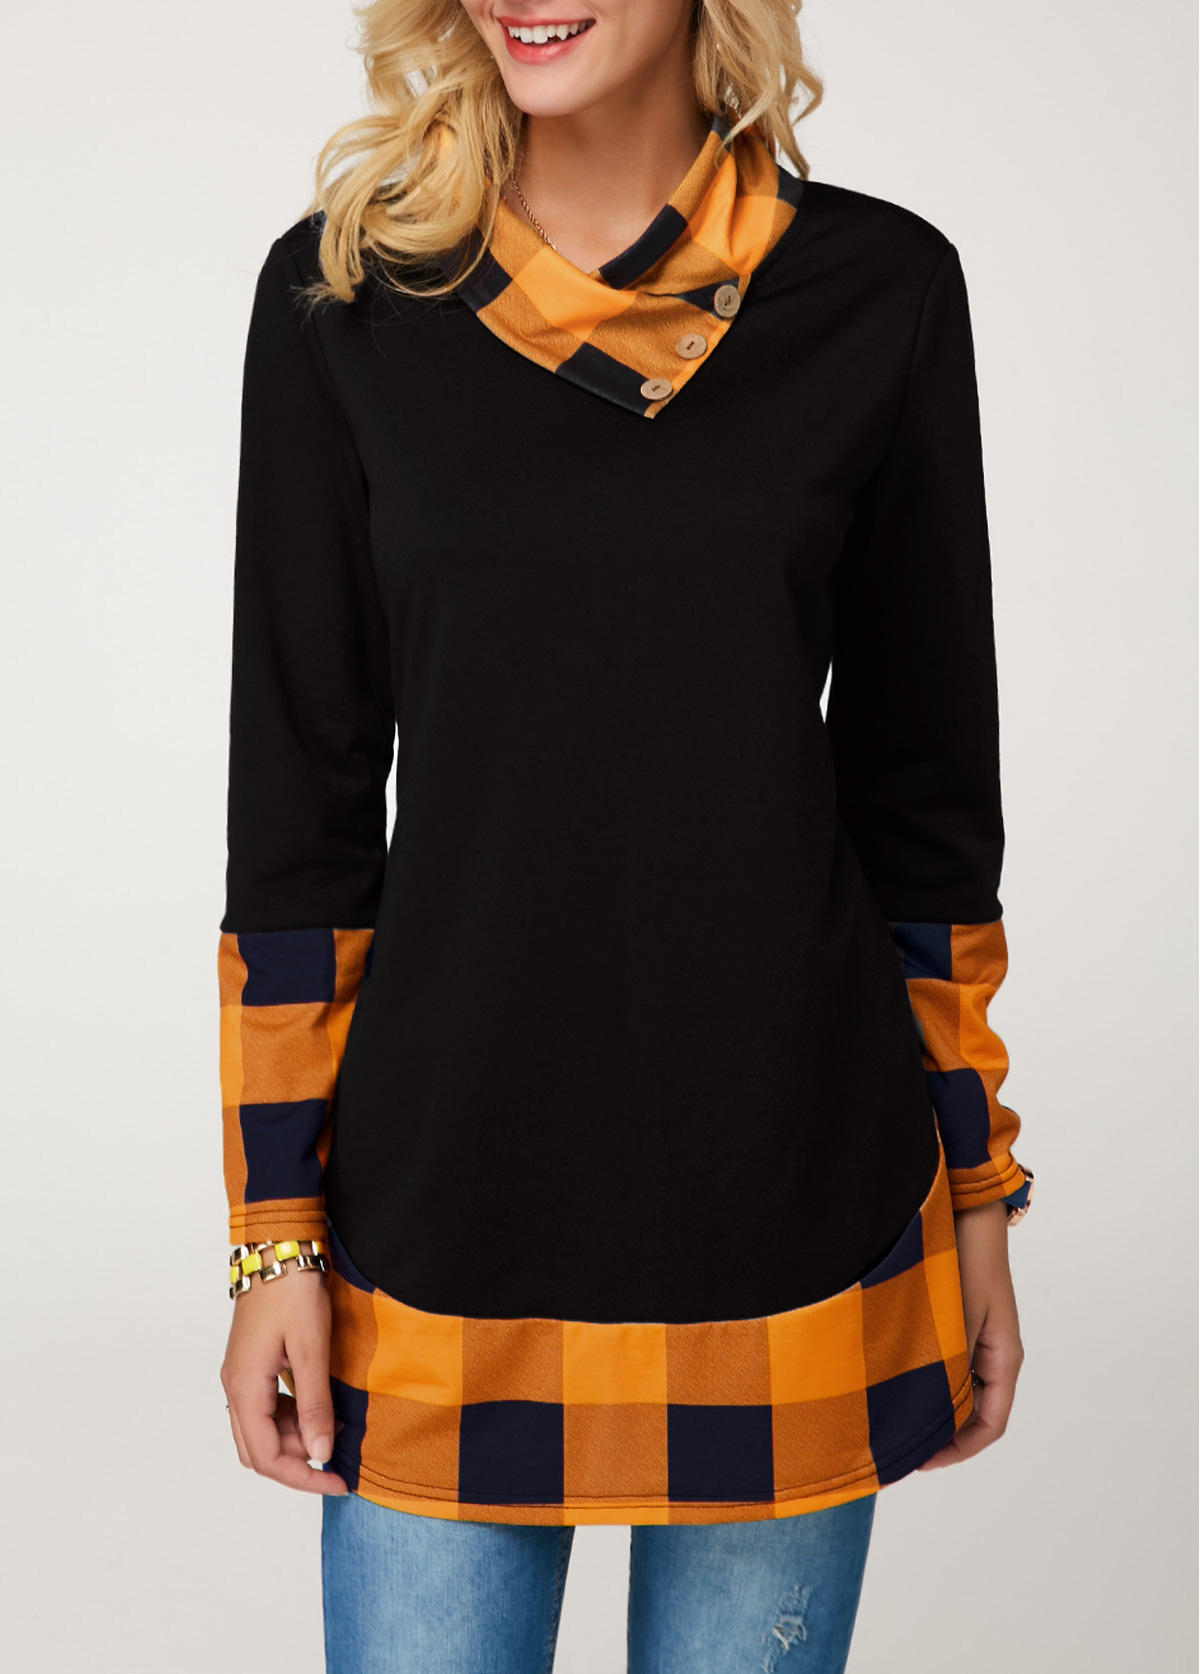 ROTITA Long Sleeve Button Detail Plaid Print Tunic T Shirt